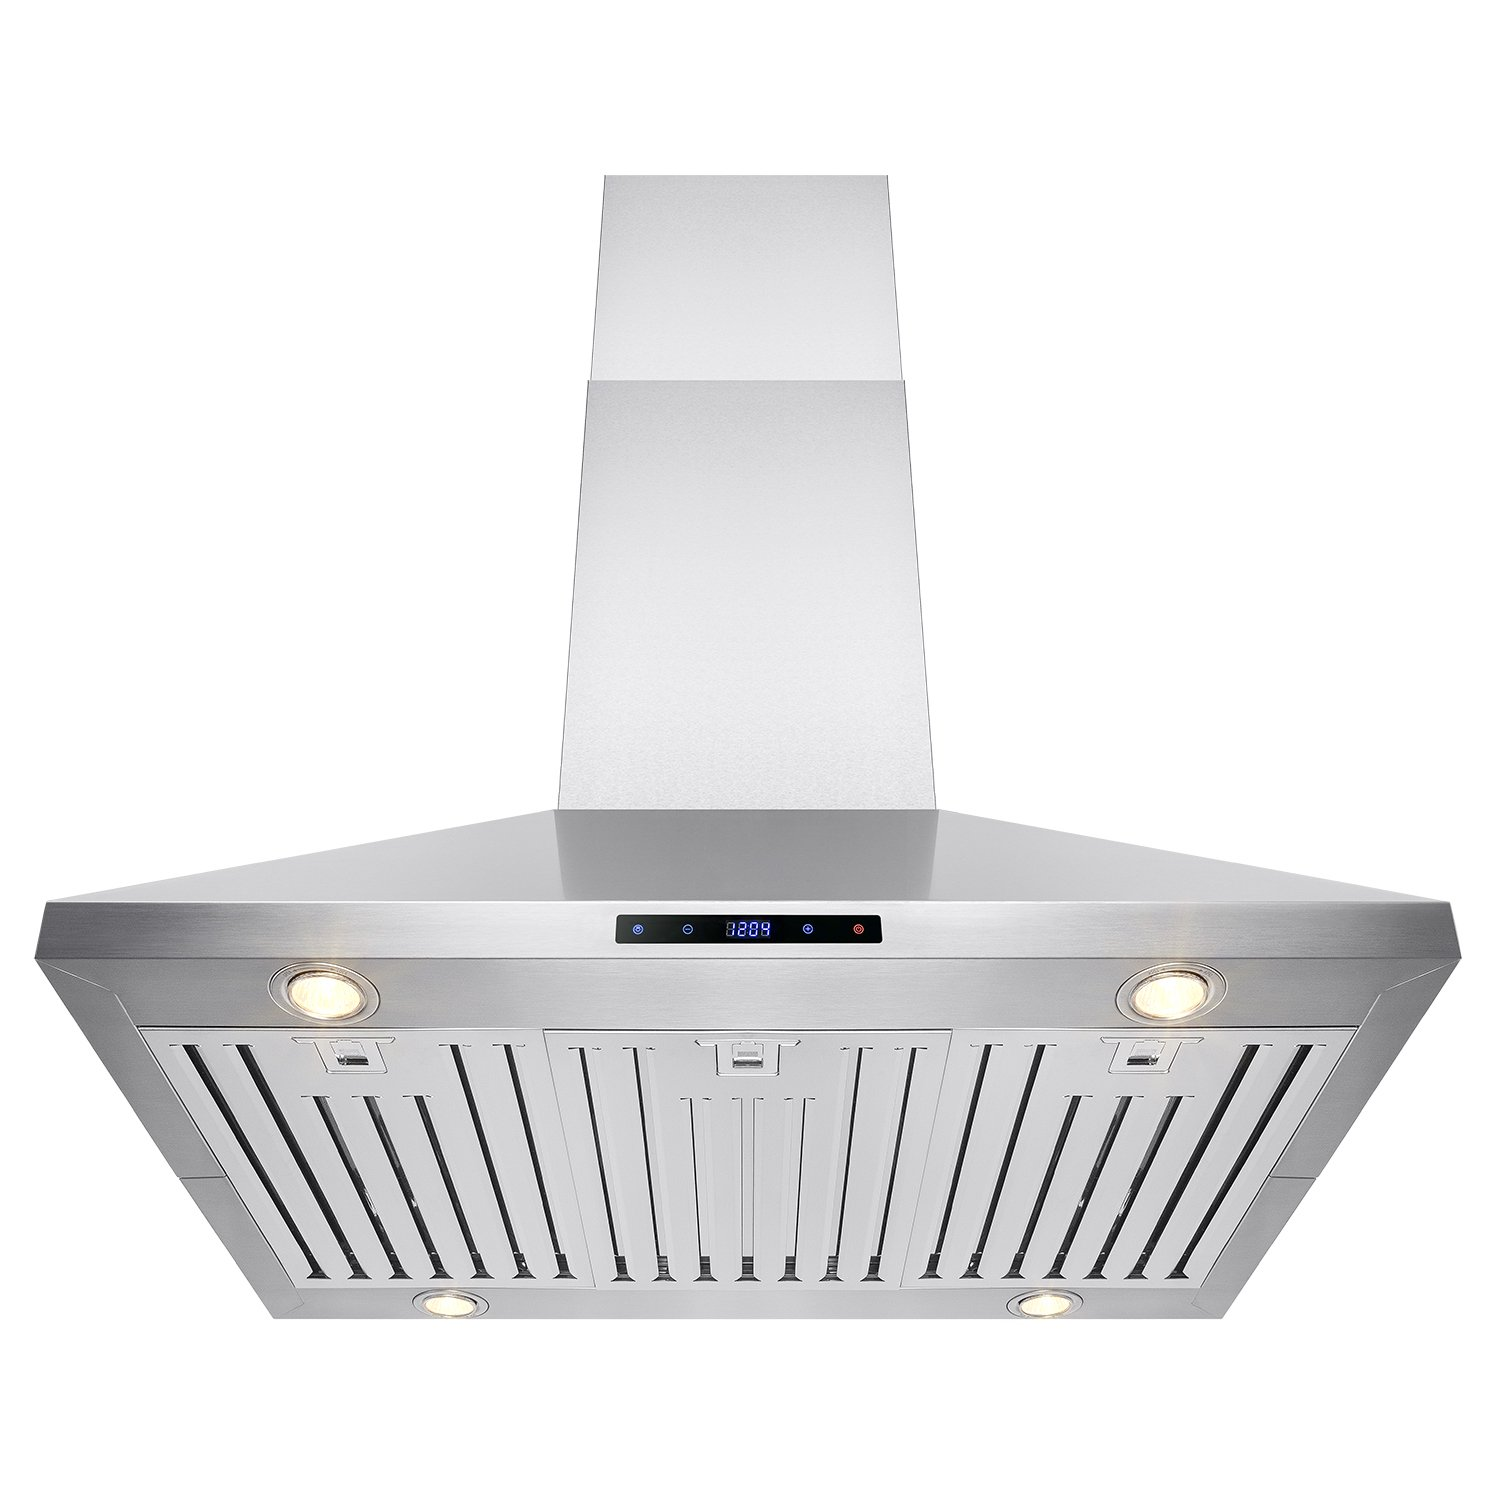 "AKDY® 36"" Island Mount Stainless Steel Kitchen Vent Ducted Range Hood LED Touch Control AZ-B03-IS-90"